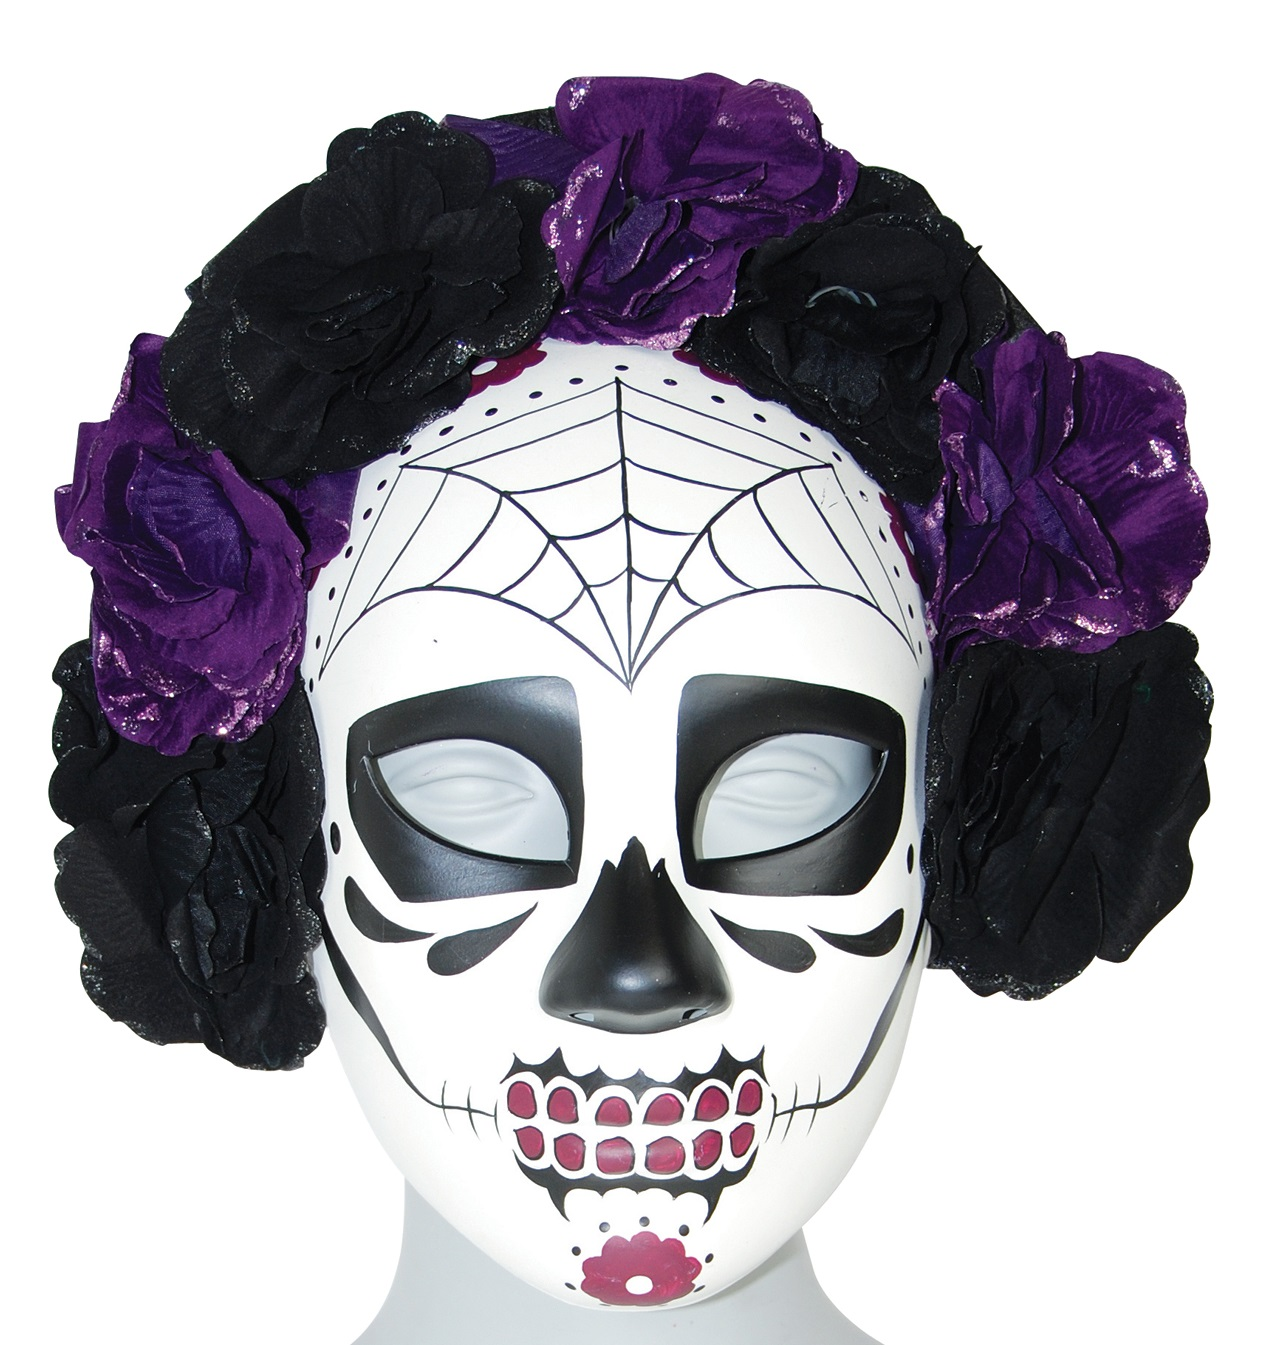 Day Of The Dead Sugar Skull  Eye Mask Purple Roses Dia De Los Muertos Costume